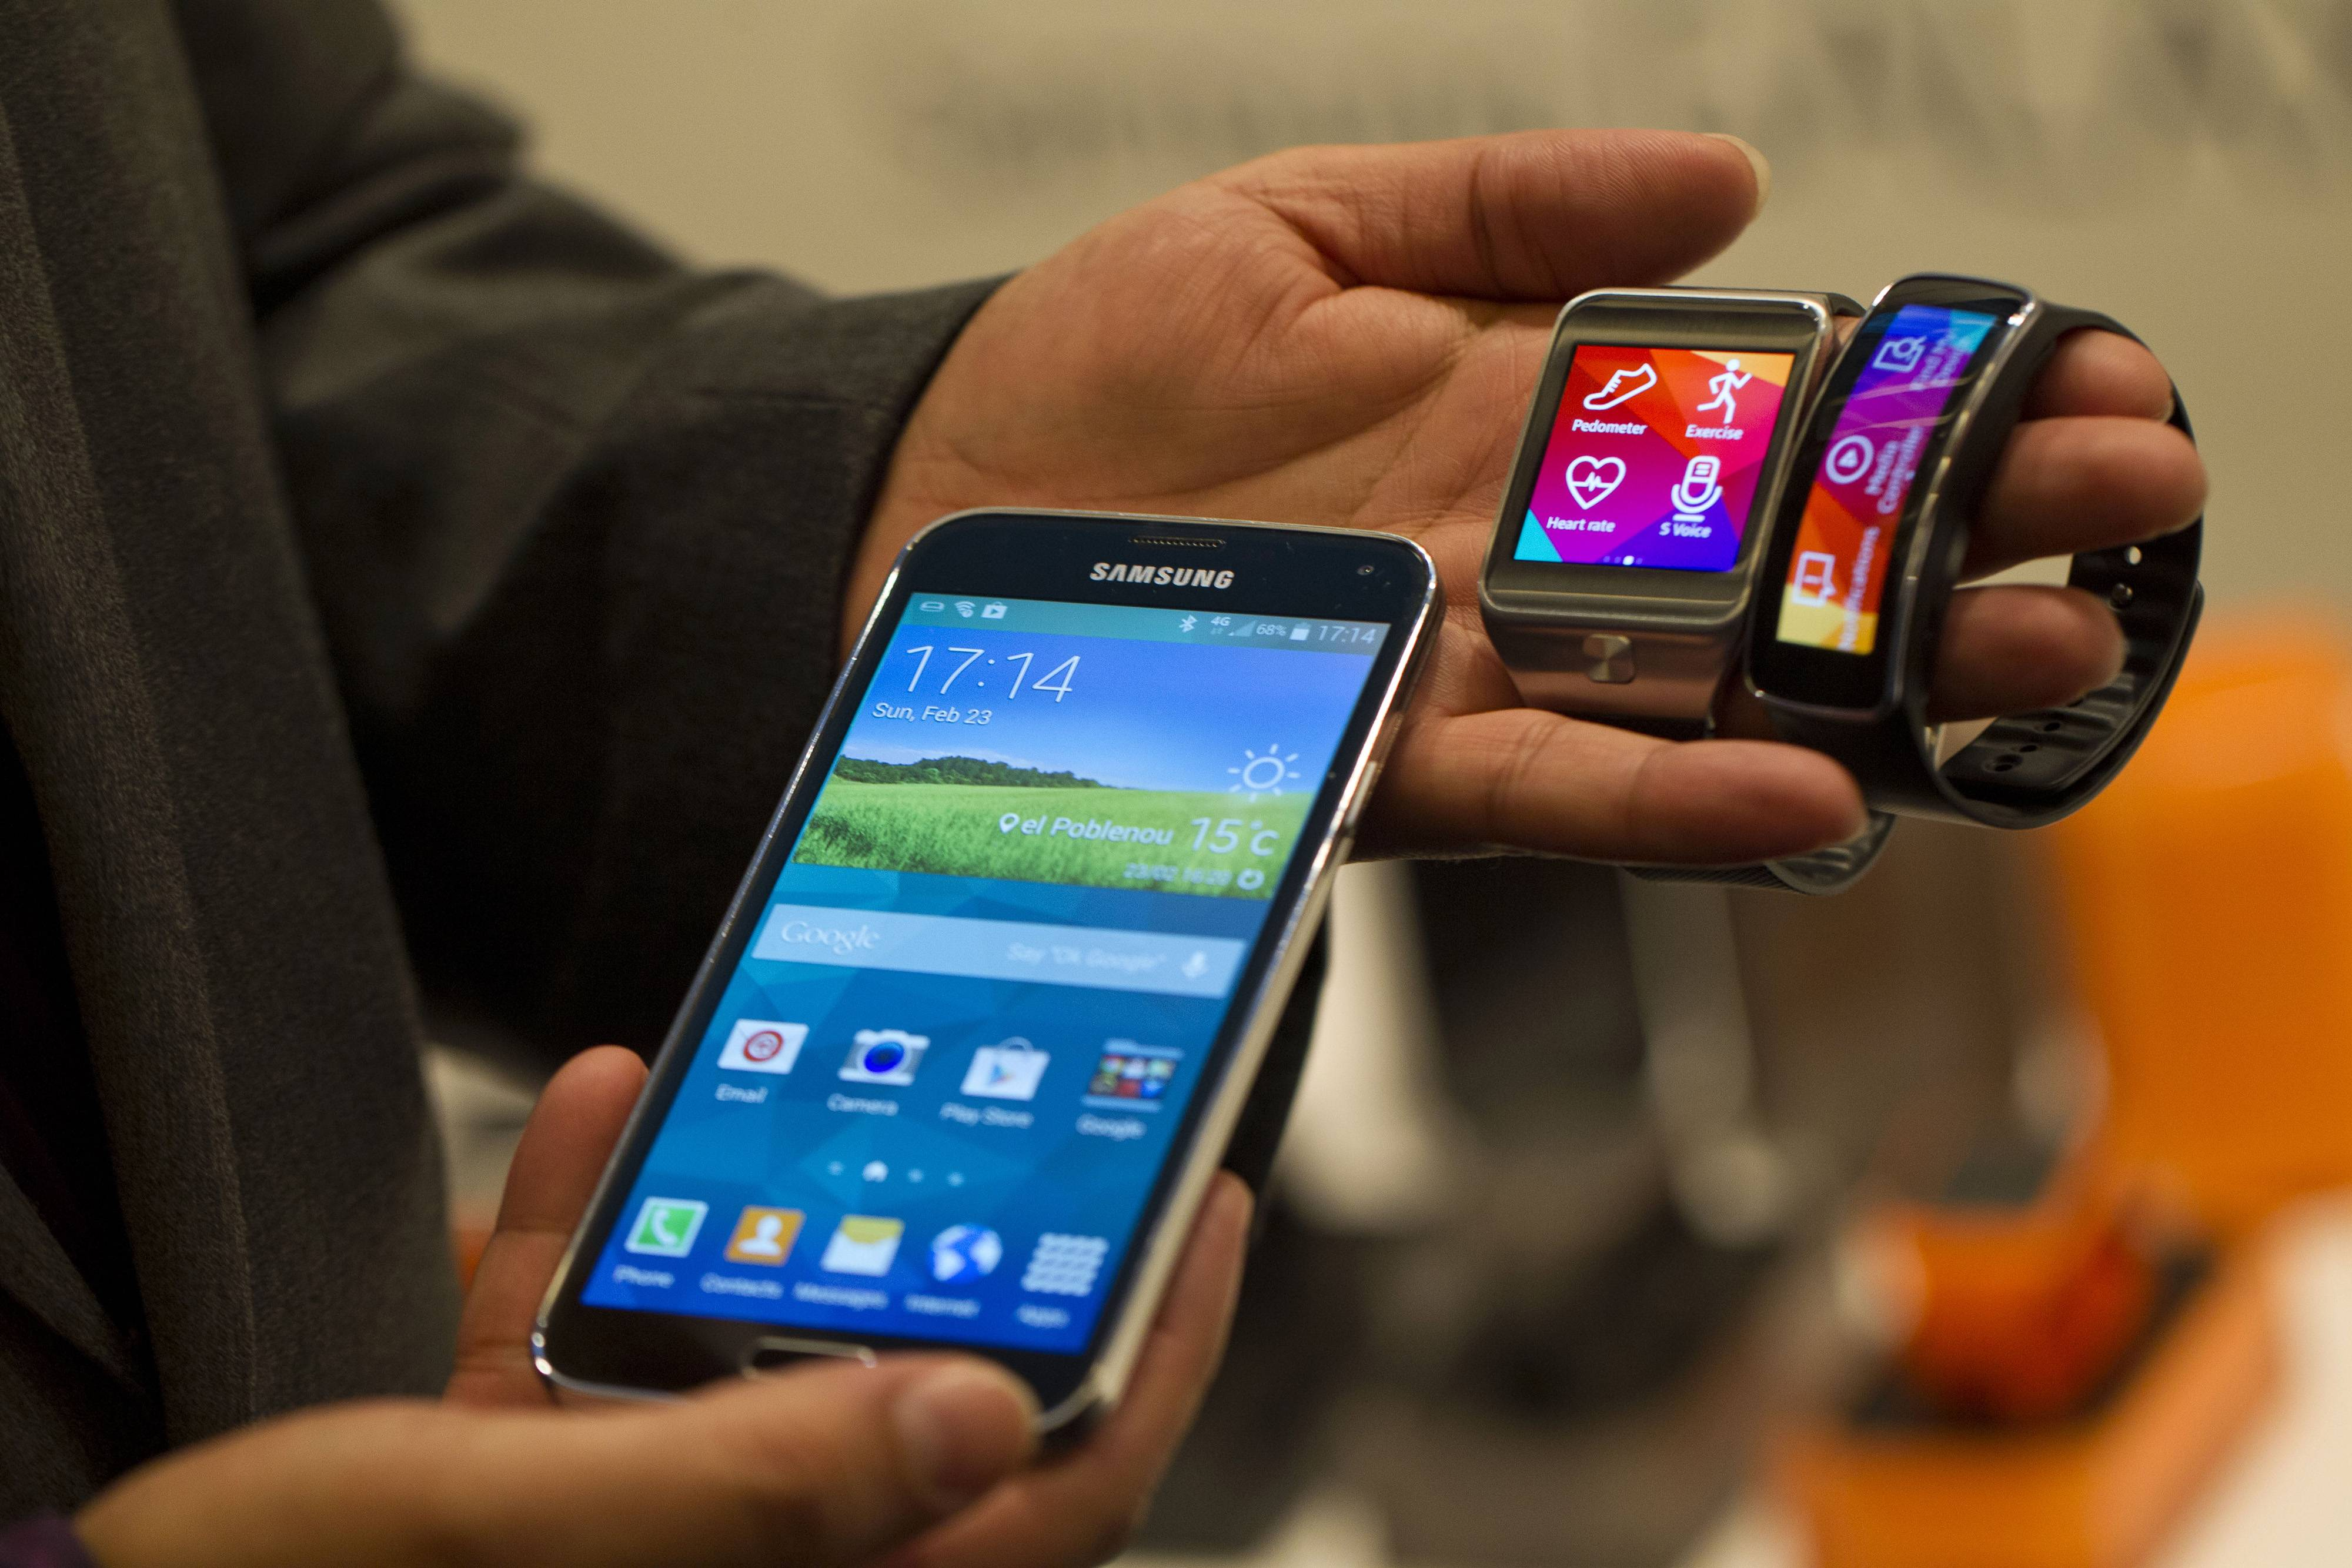 An employee displays a Galaxy S5 smartphone, left, and new Samsung Gear, center, and Gear Fit wristwatch devices during a Samsung Electronics Co. news conference ahead of the Mobile World Congress in Barcelona, Spain.